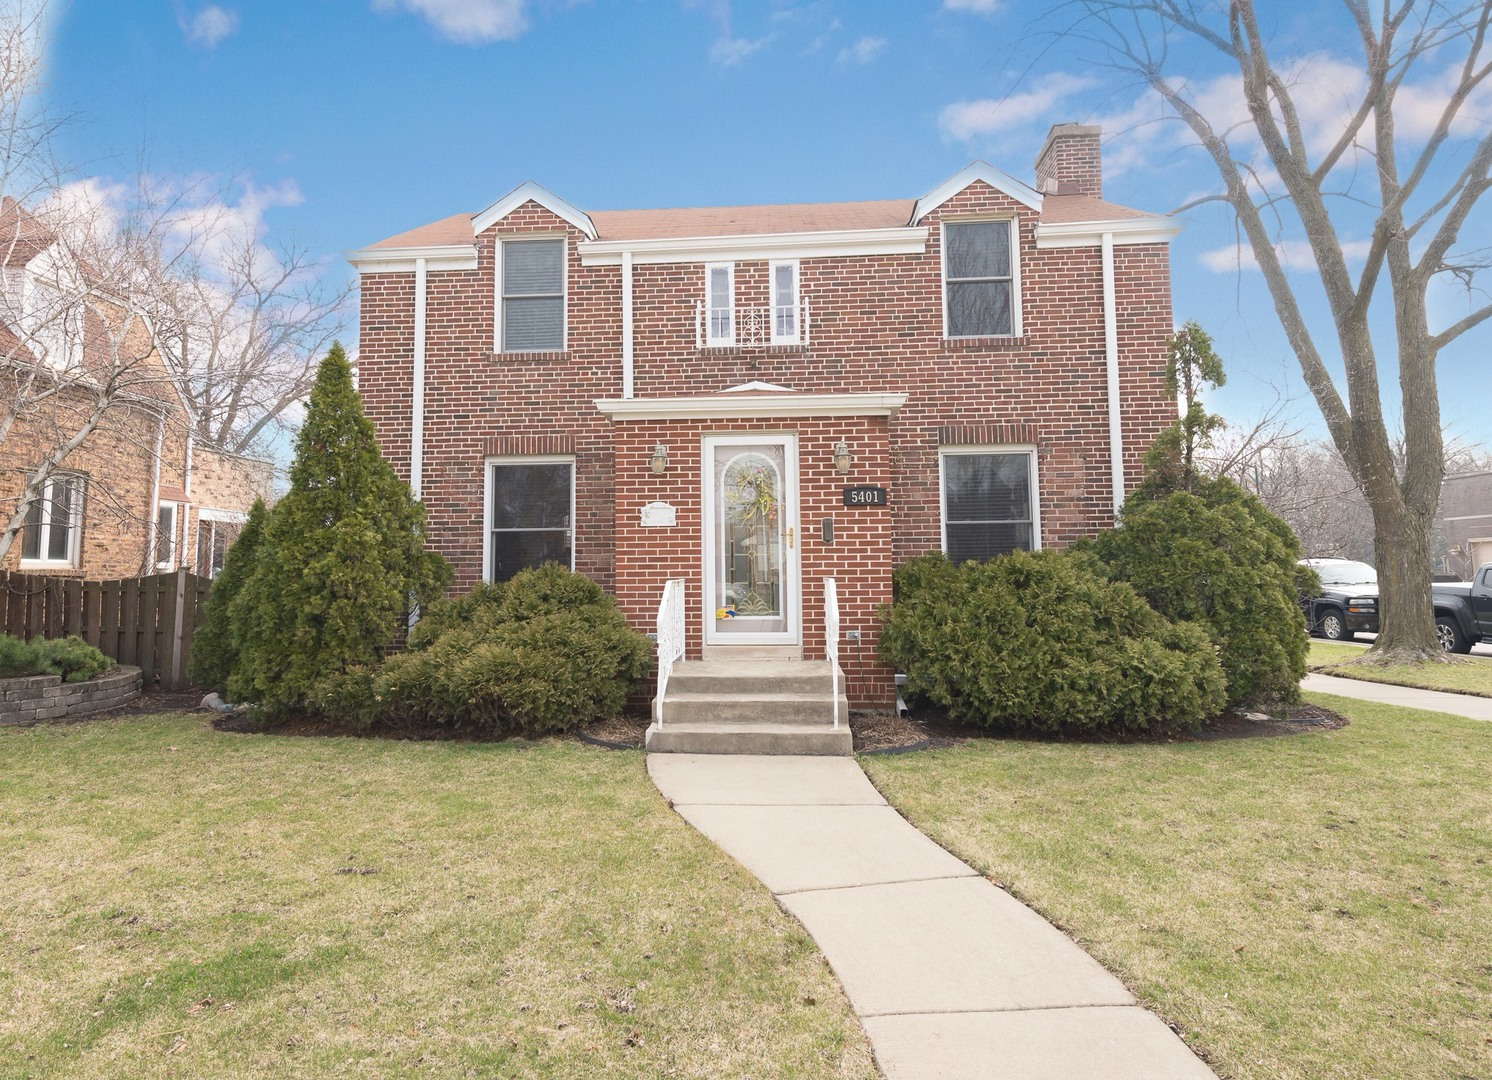 Photo for 5401 N Oriole Avenue, CHICAGO, IL 60656 (MLS # 10335645)